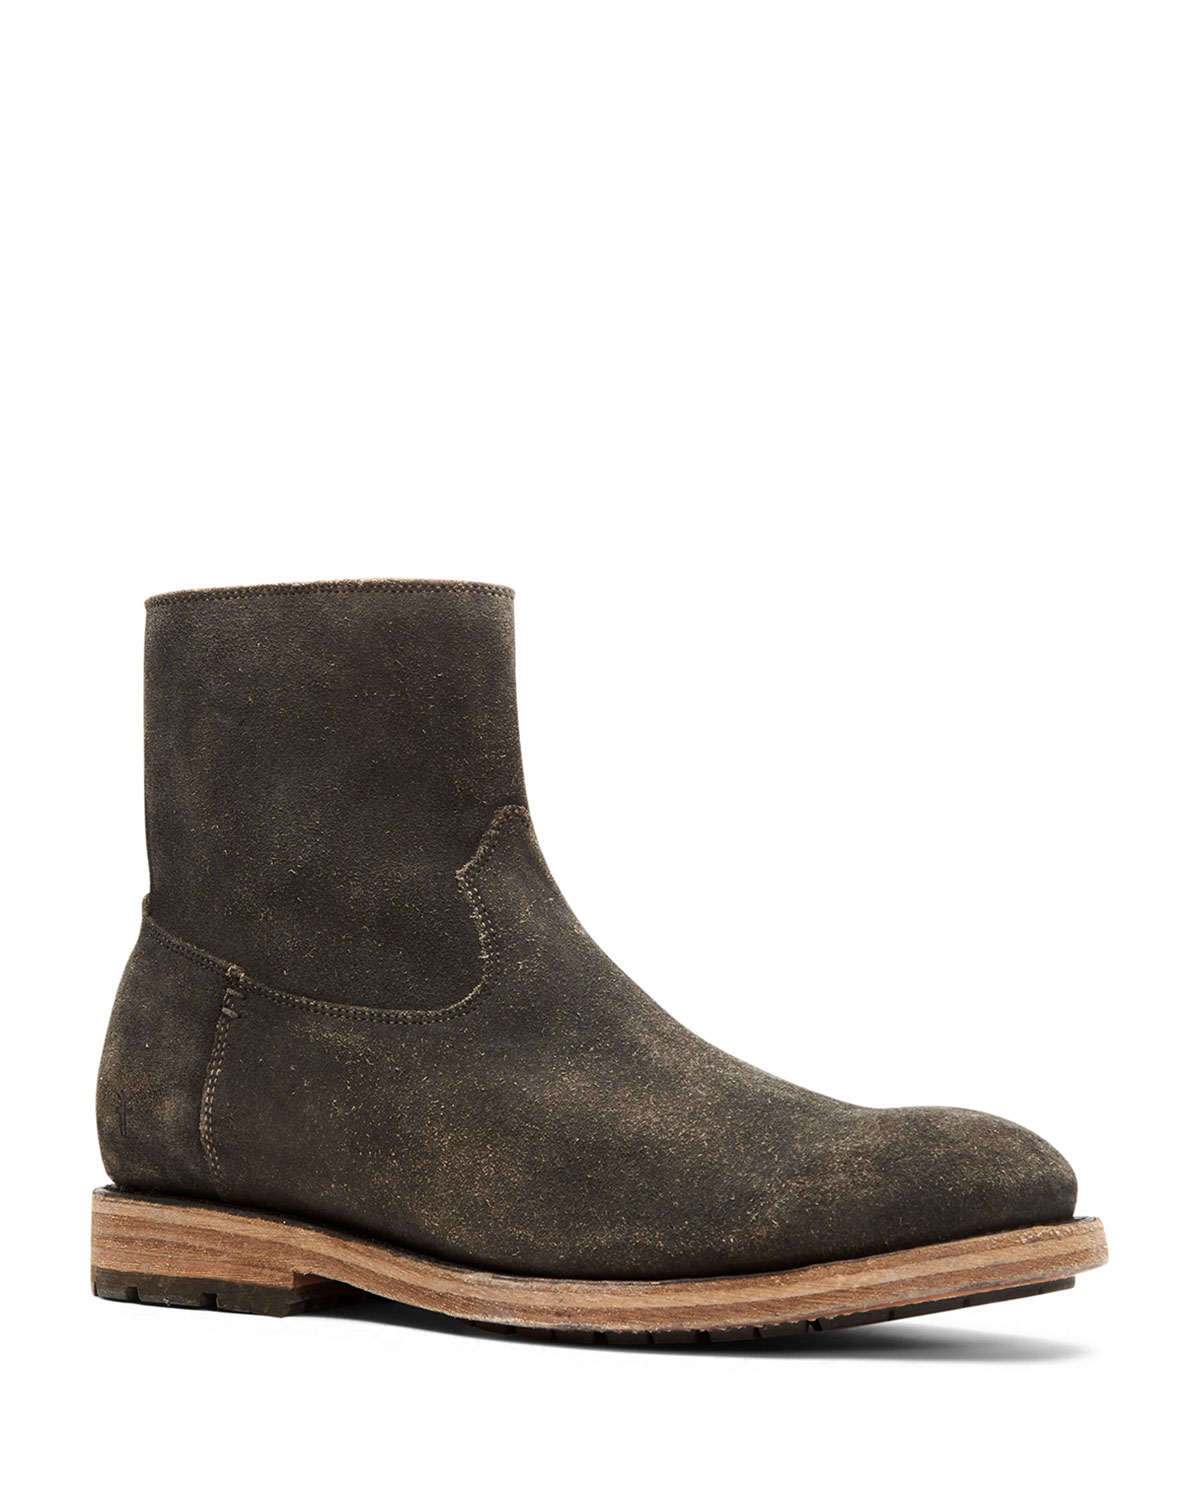 Men's Bowery Distressed Suede Ankle Boots